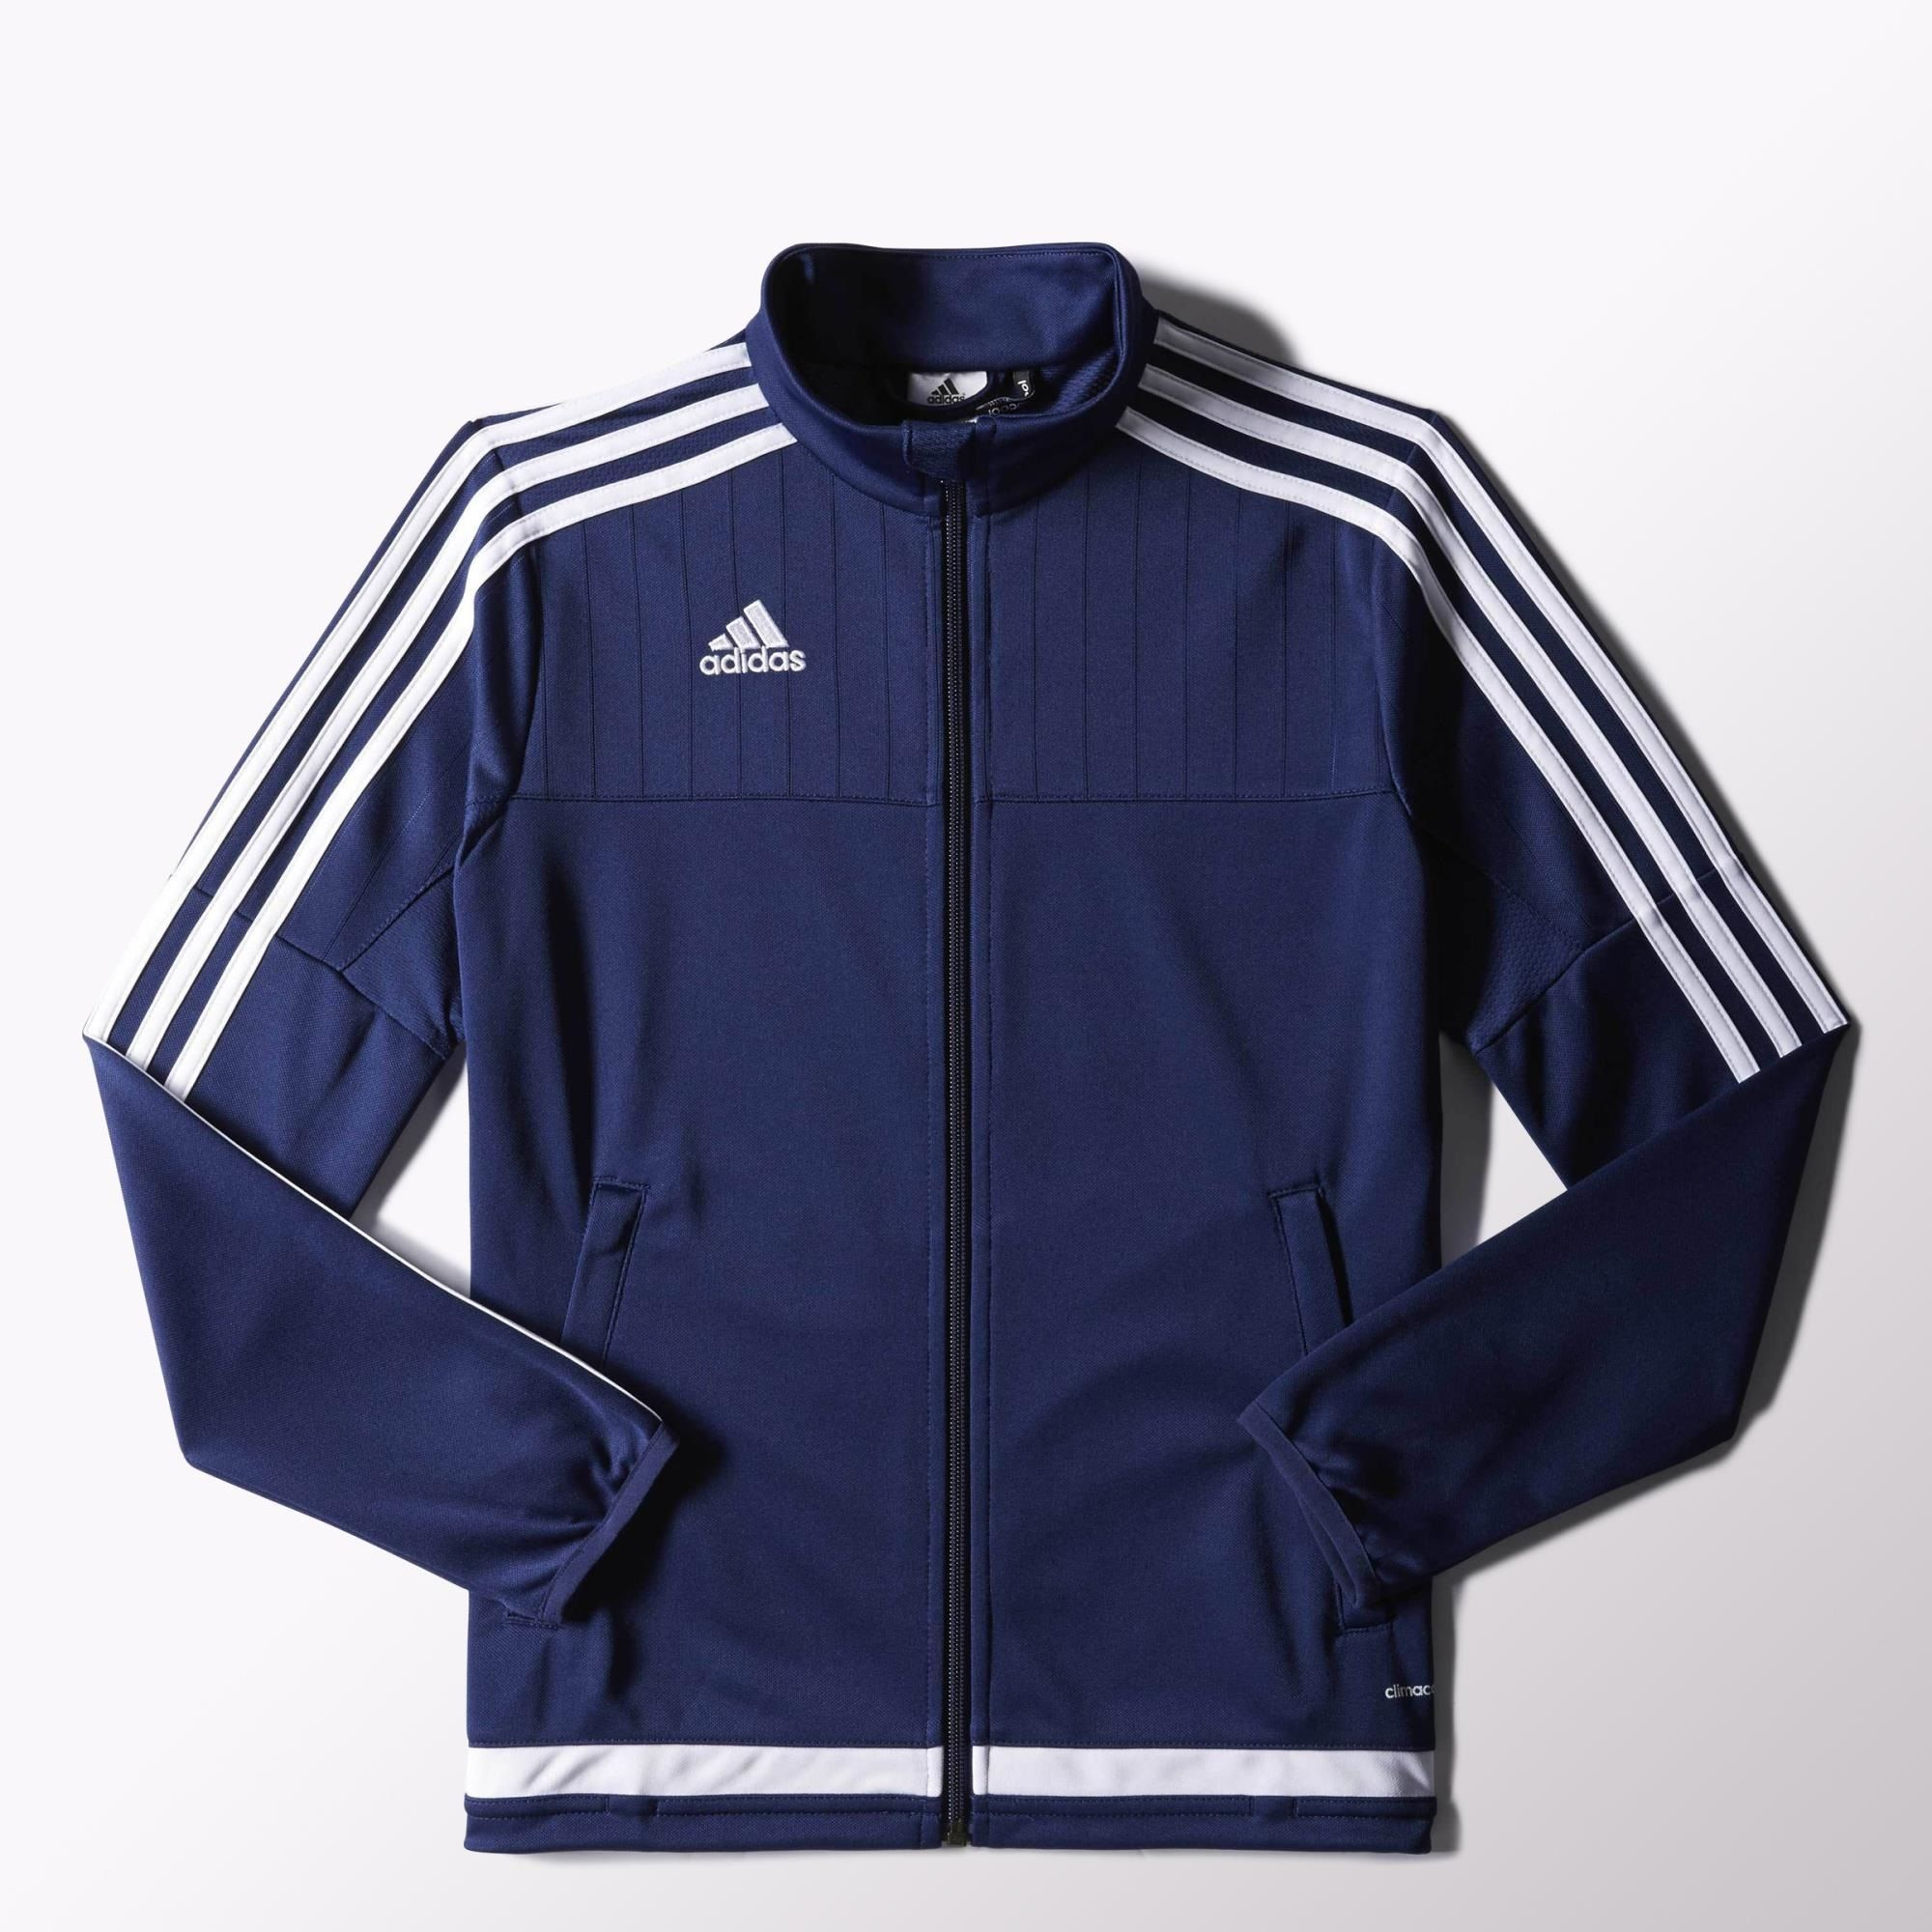 Kid's Tiro 15 Training Soccer Jacket